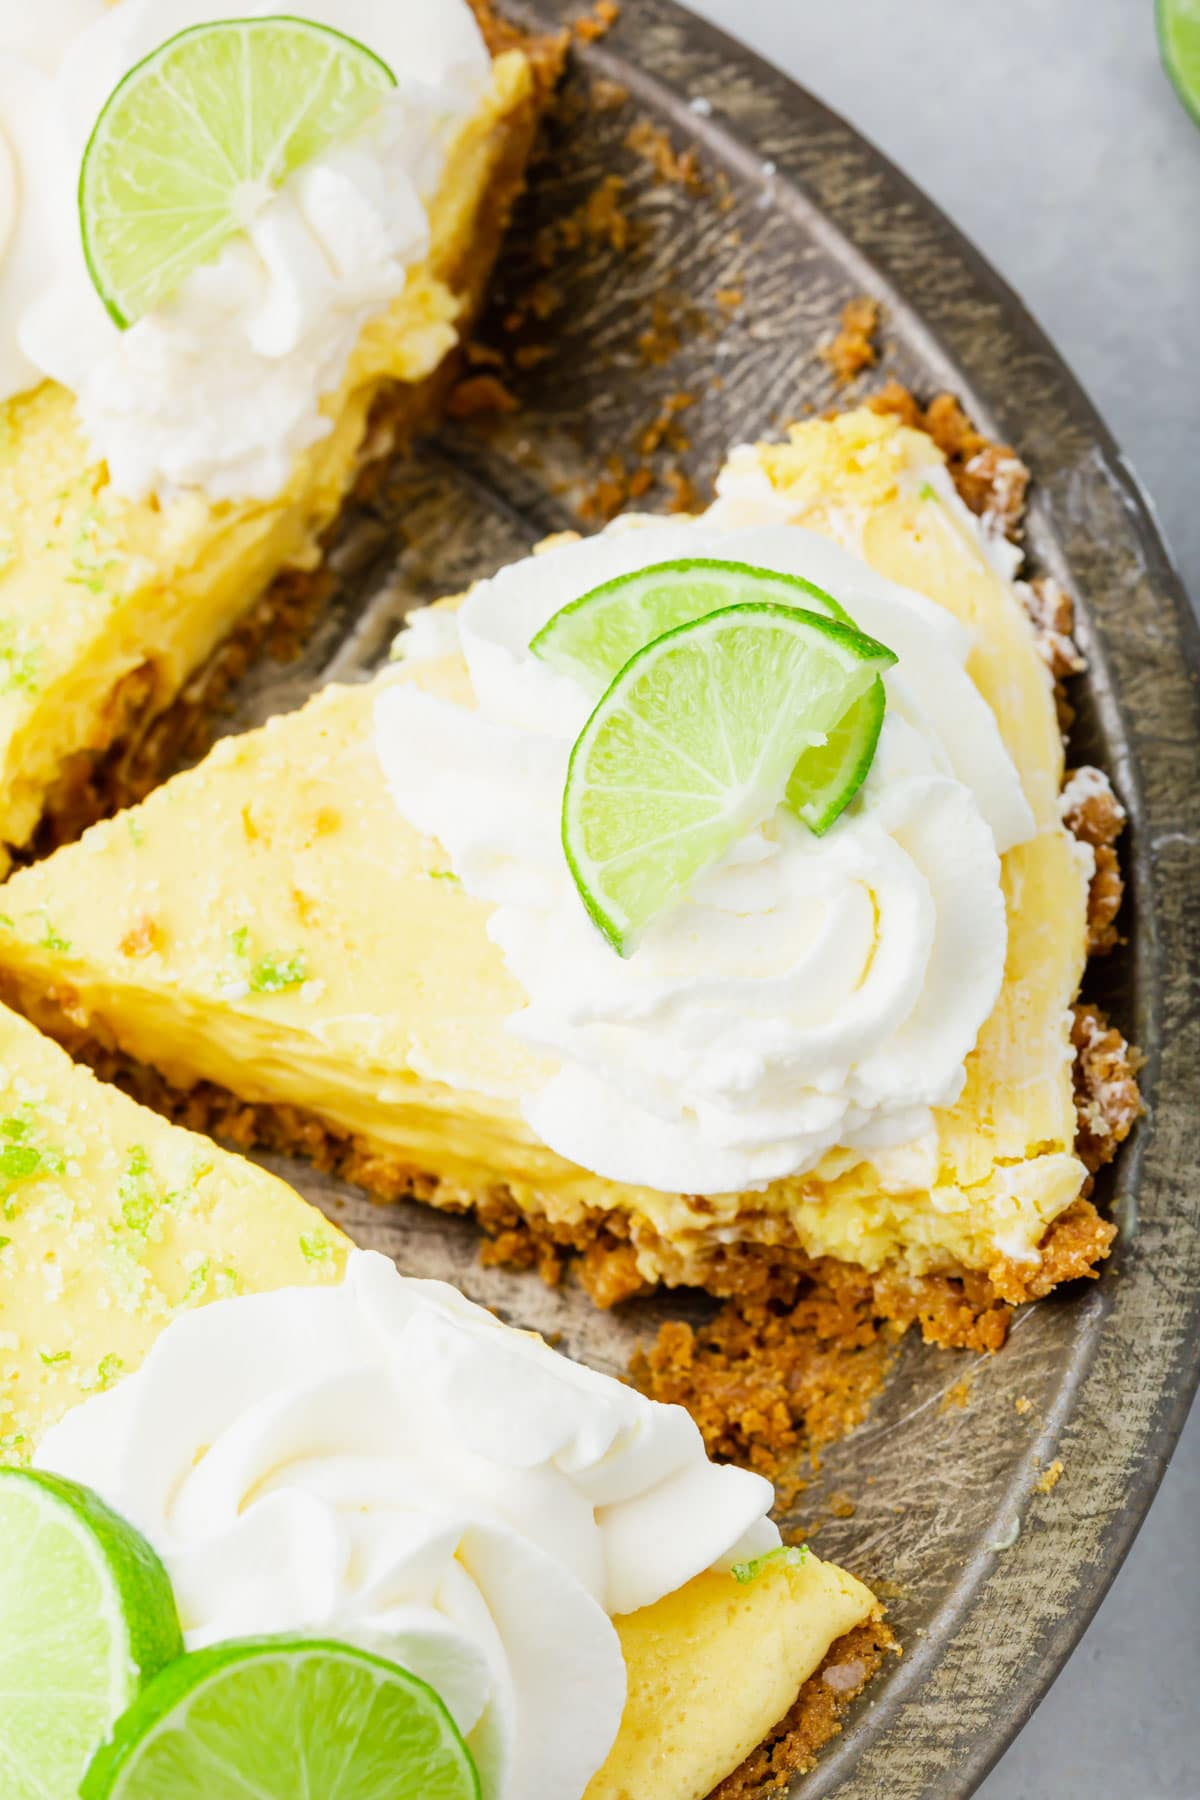 A photo of slices of key lime pie in a pie tin.